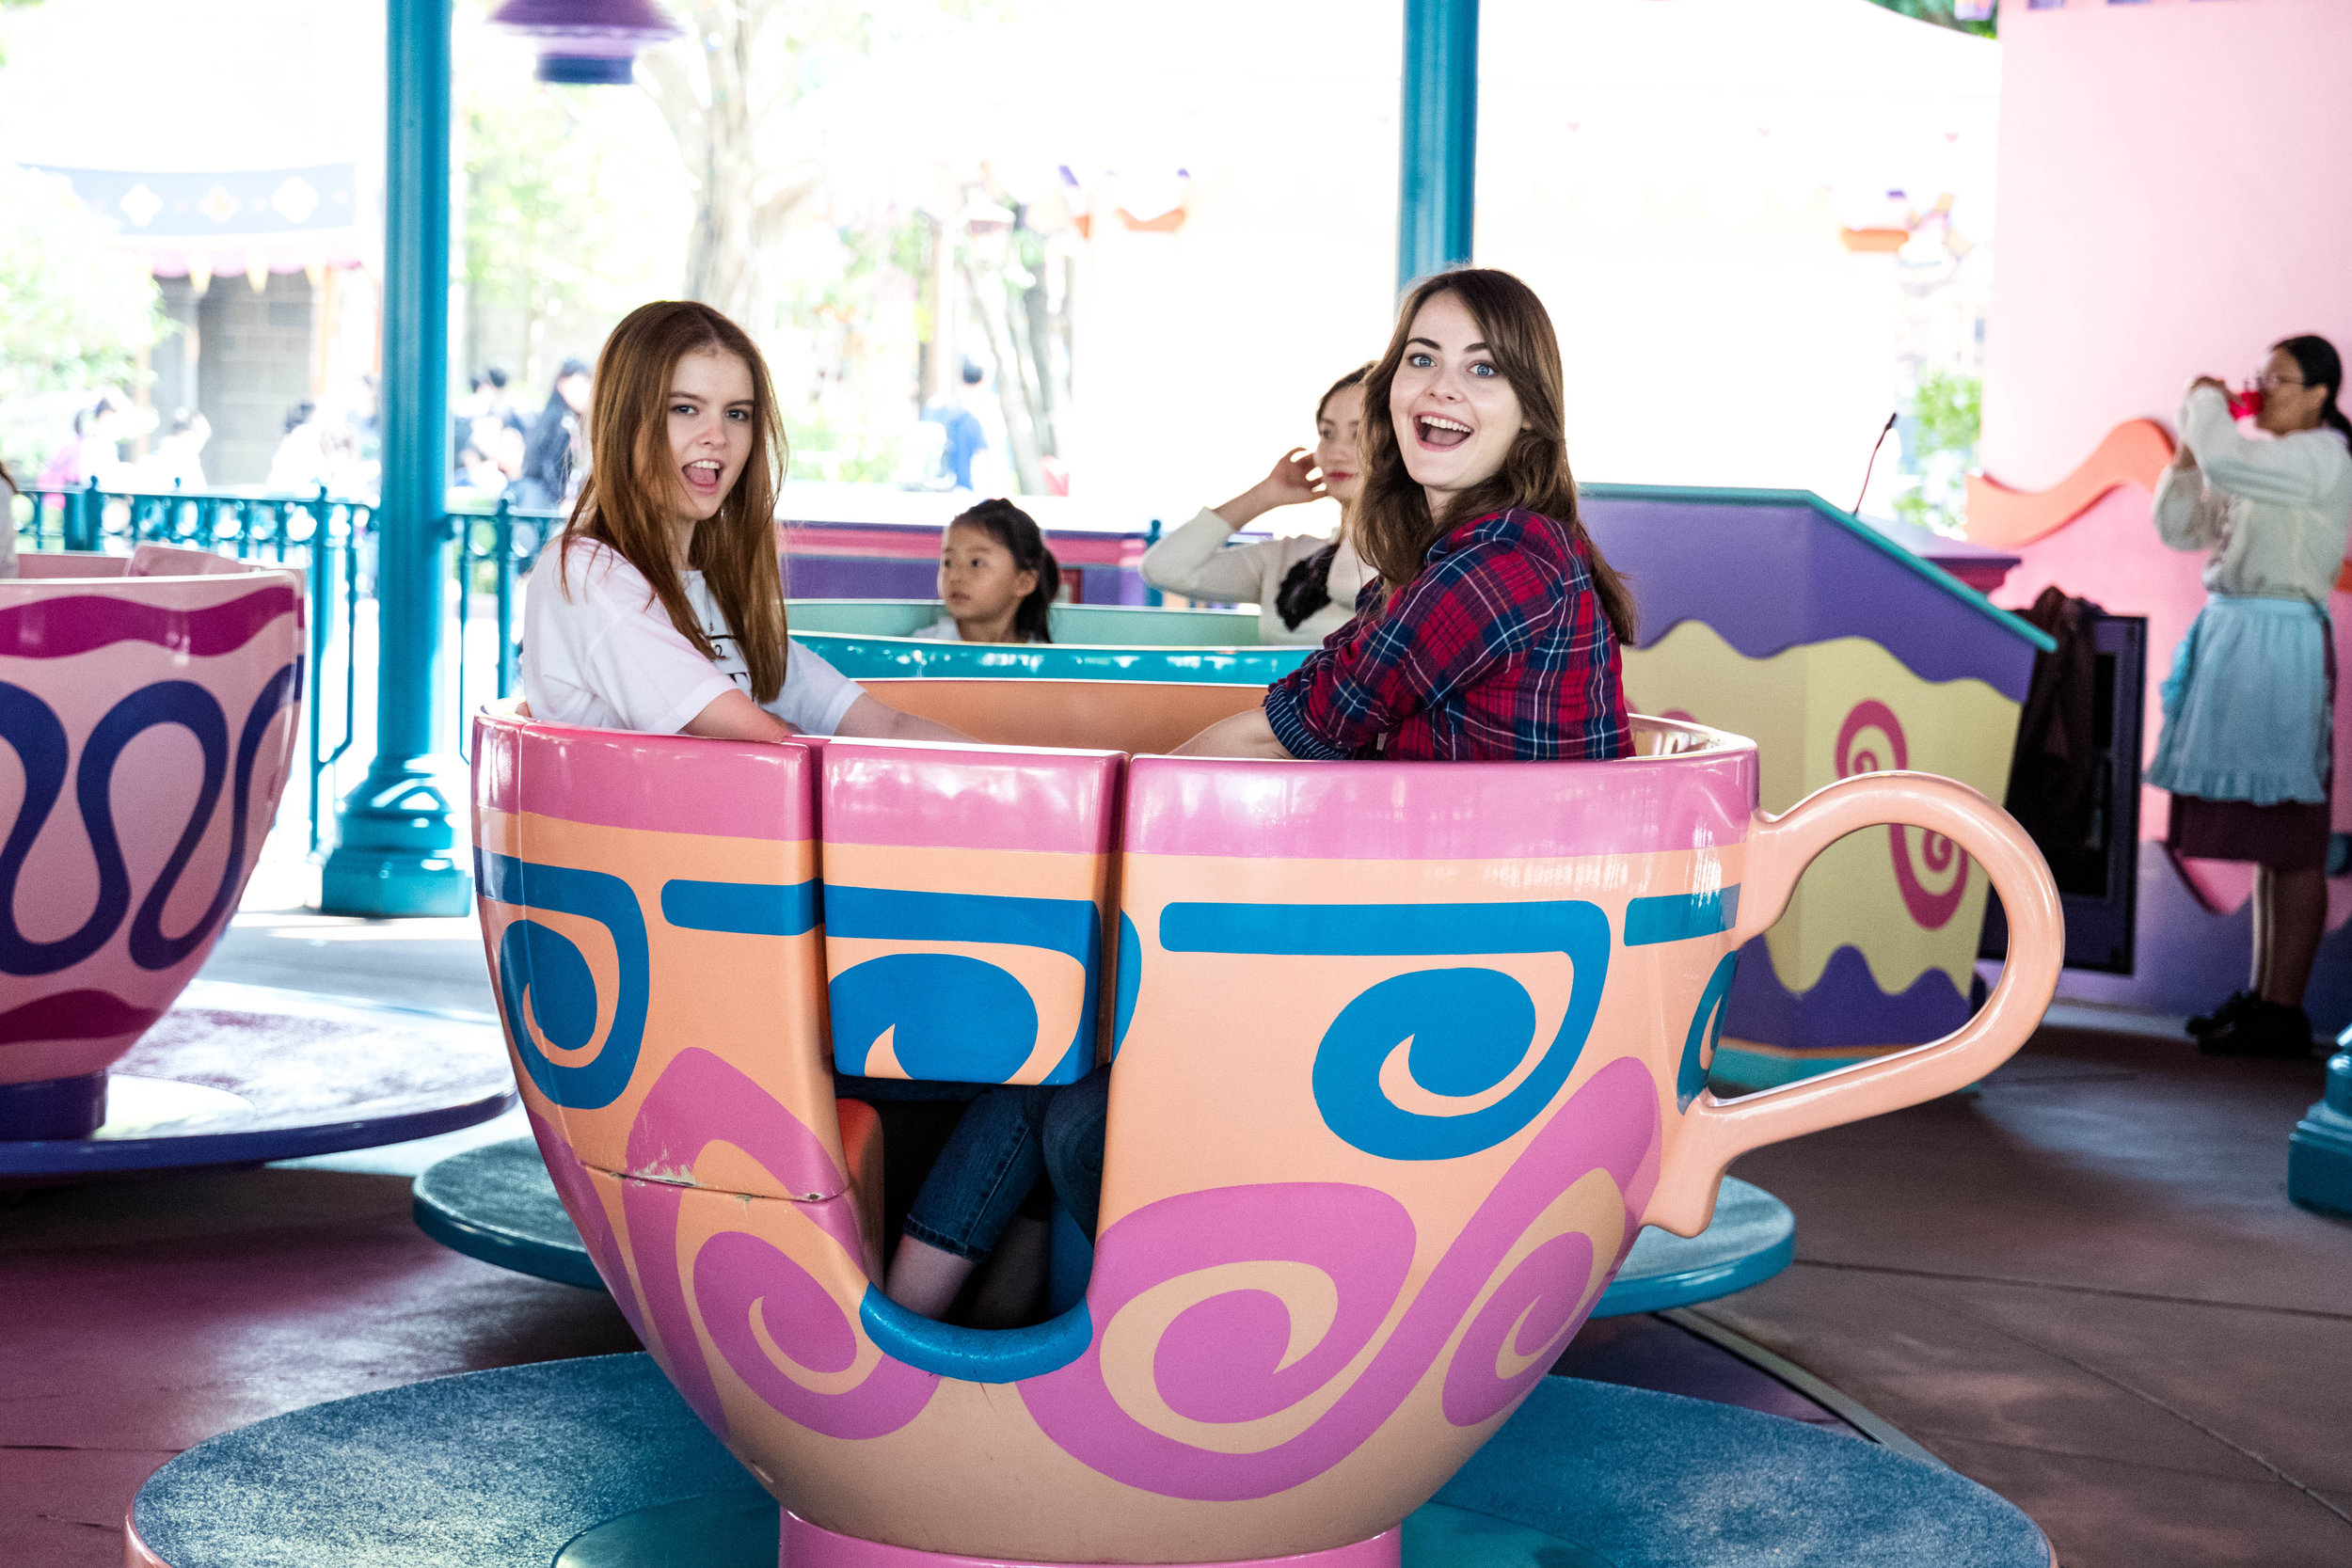 There wasn't enough contrast on either Lessy or Anna's face, especially with the teacup rotating and snaking round the perimeter of the ride. Instead, the autofocus locked onto the graphics of the teacup.